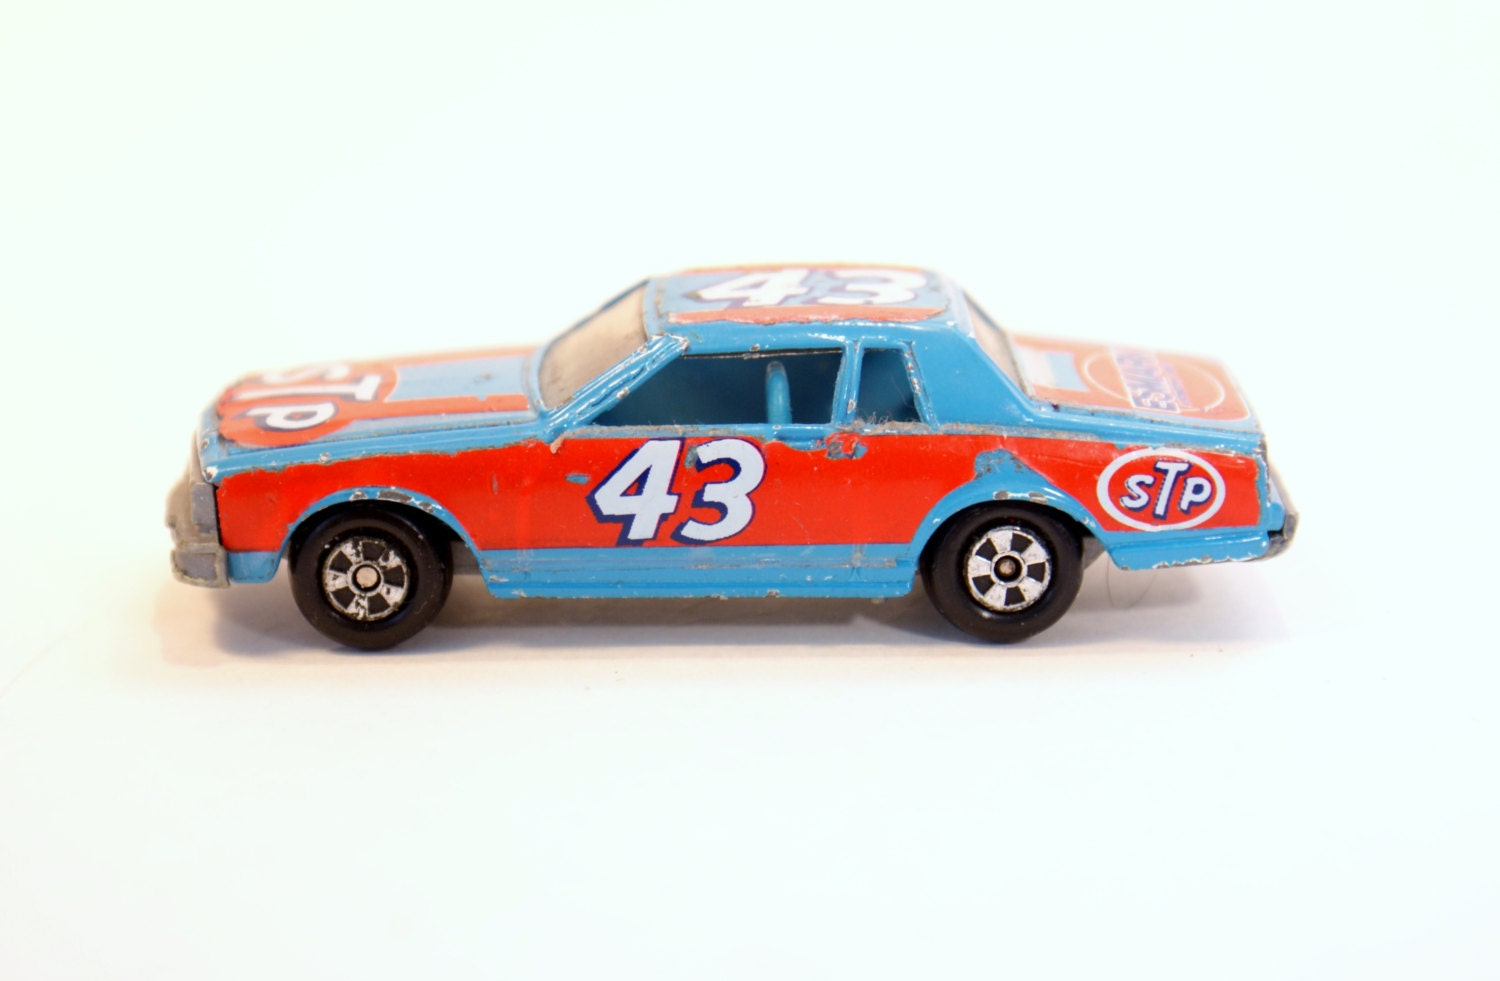 Toy Race Cars : Vintage toys toy cars rare ertl richard petty race car pre